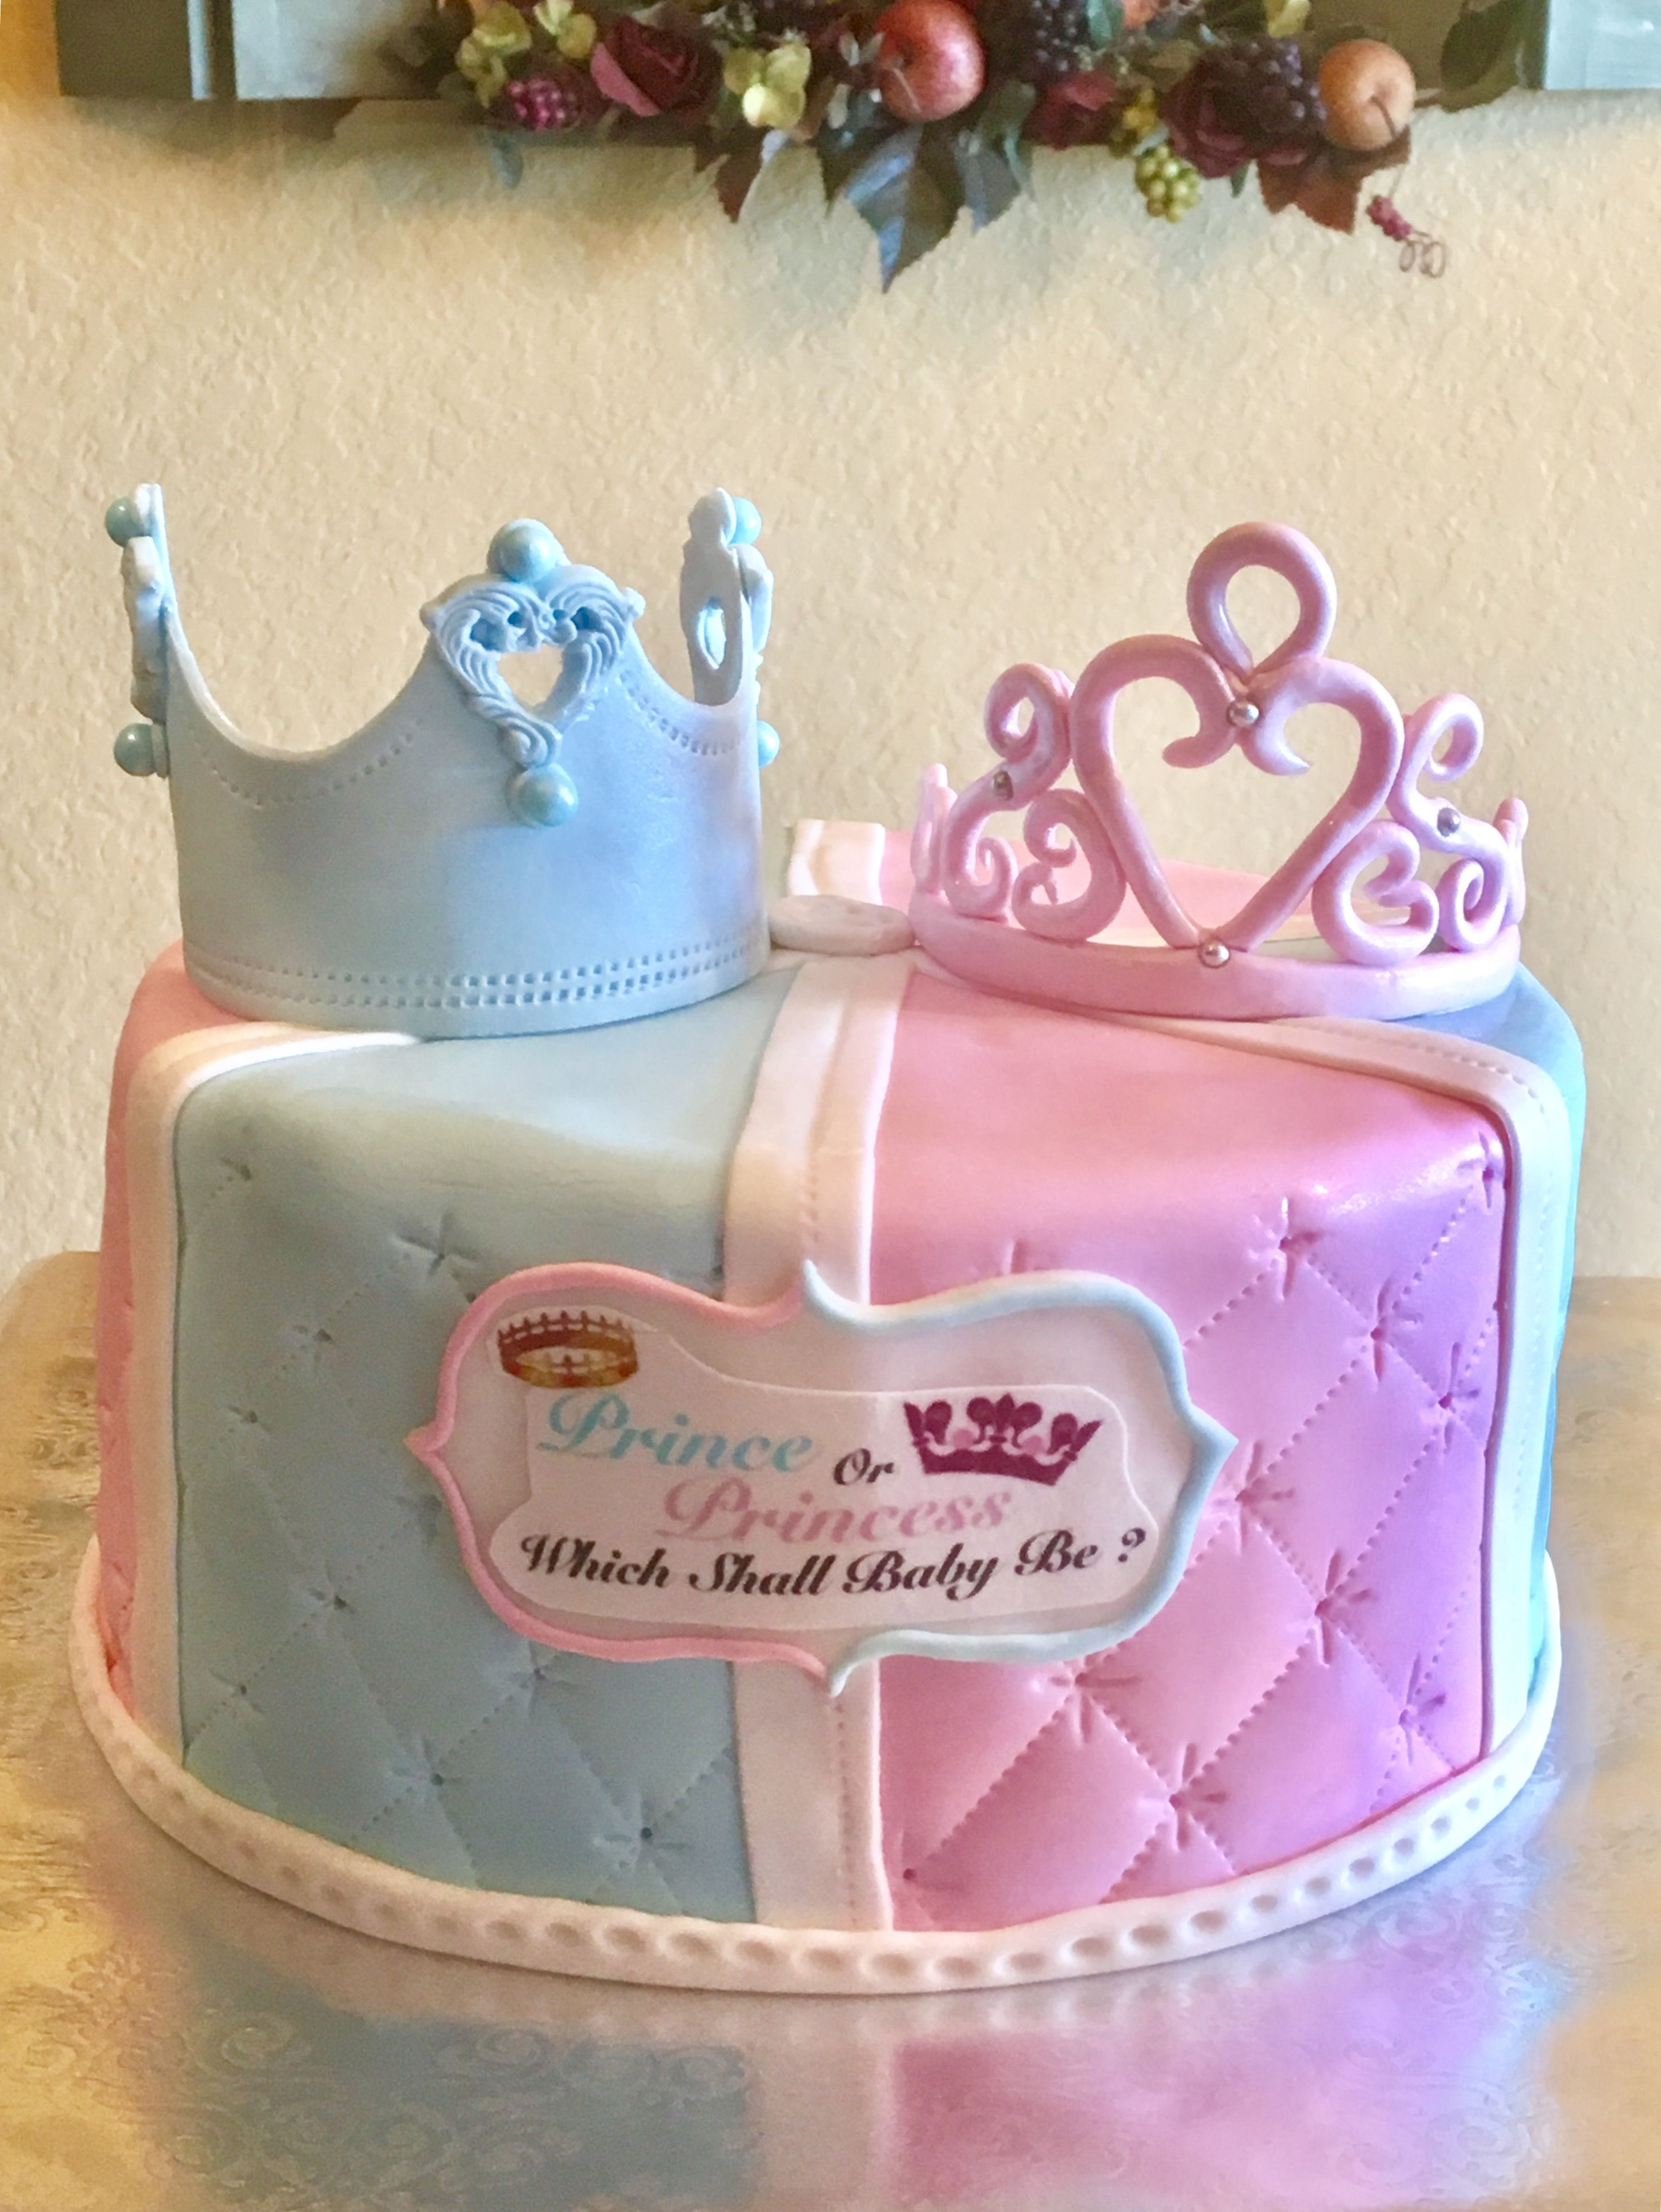 gender reveal baby shower cake - Gender Reveal Baby Shower